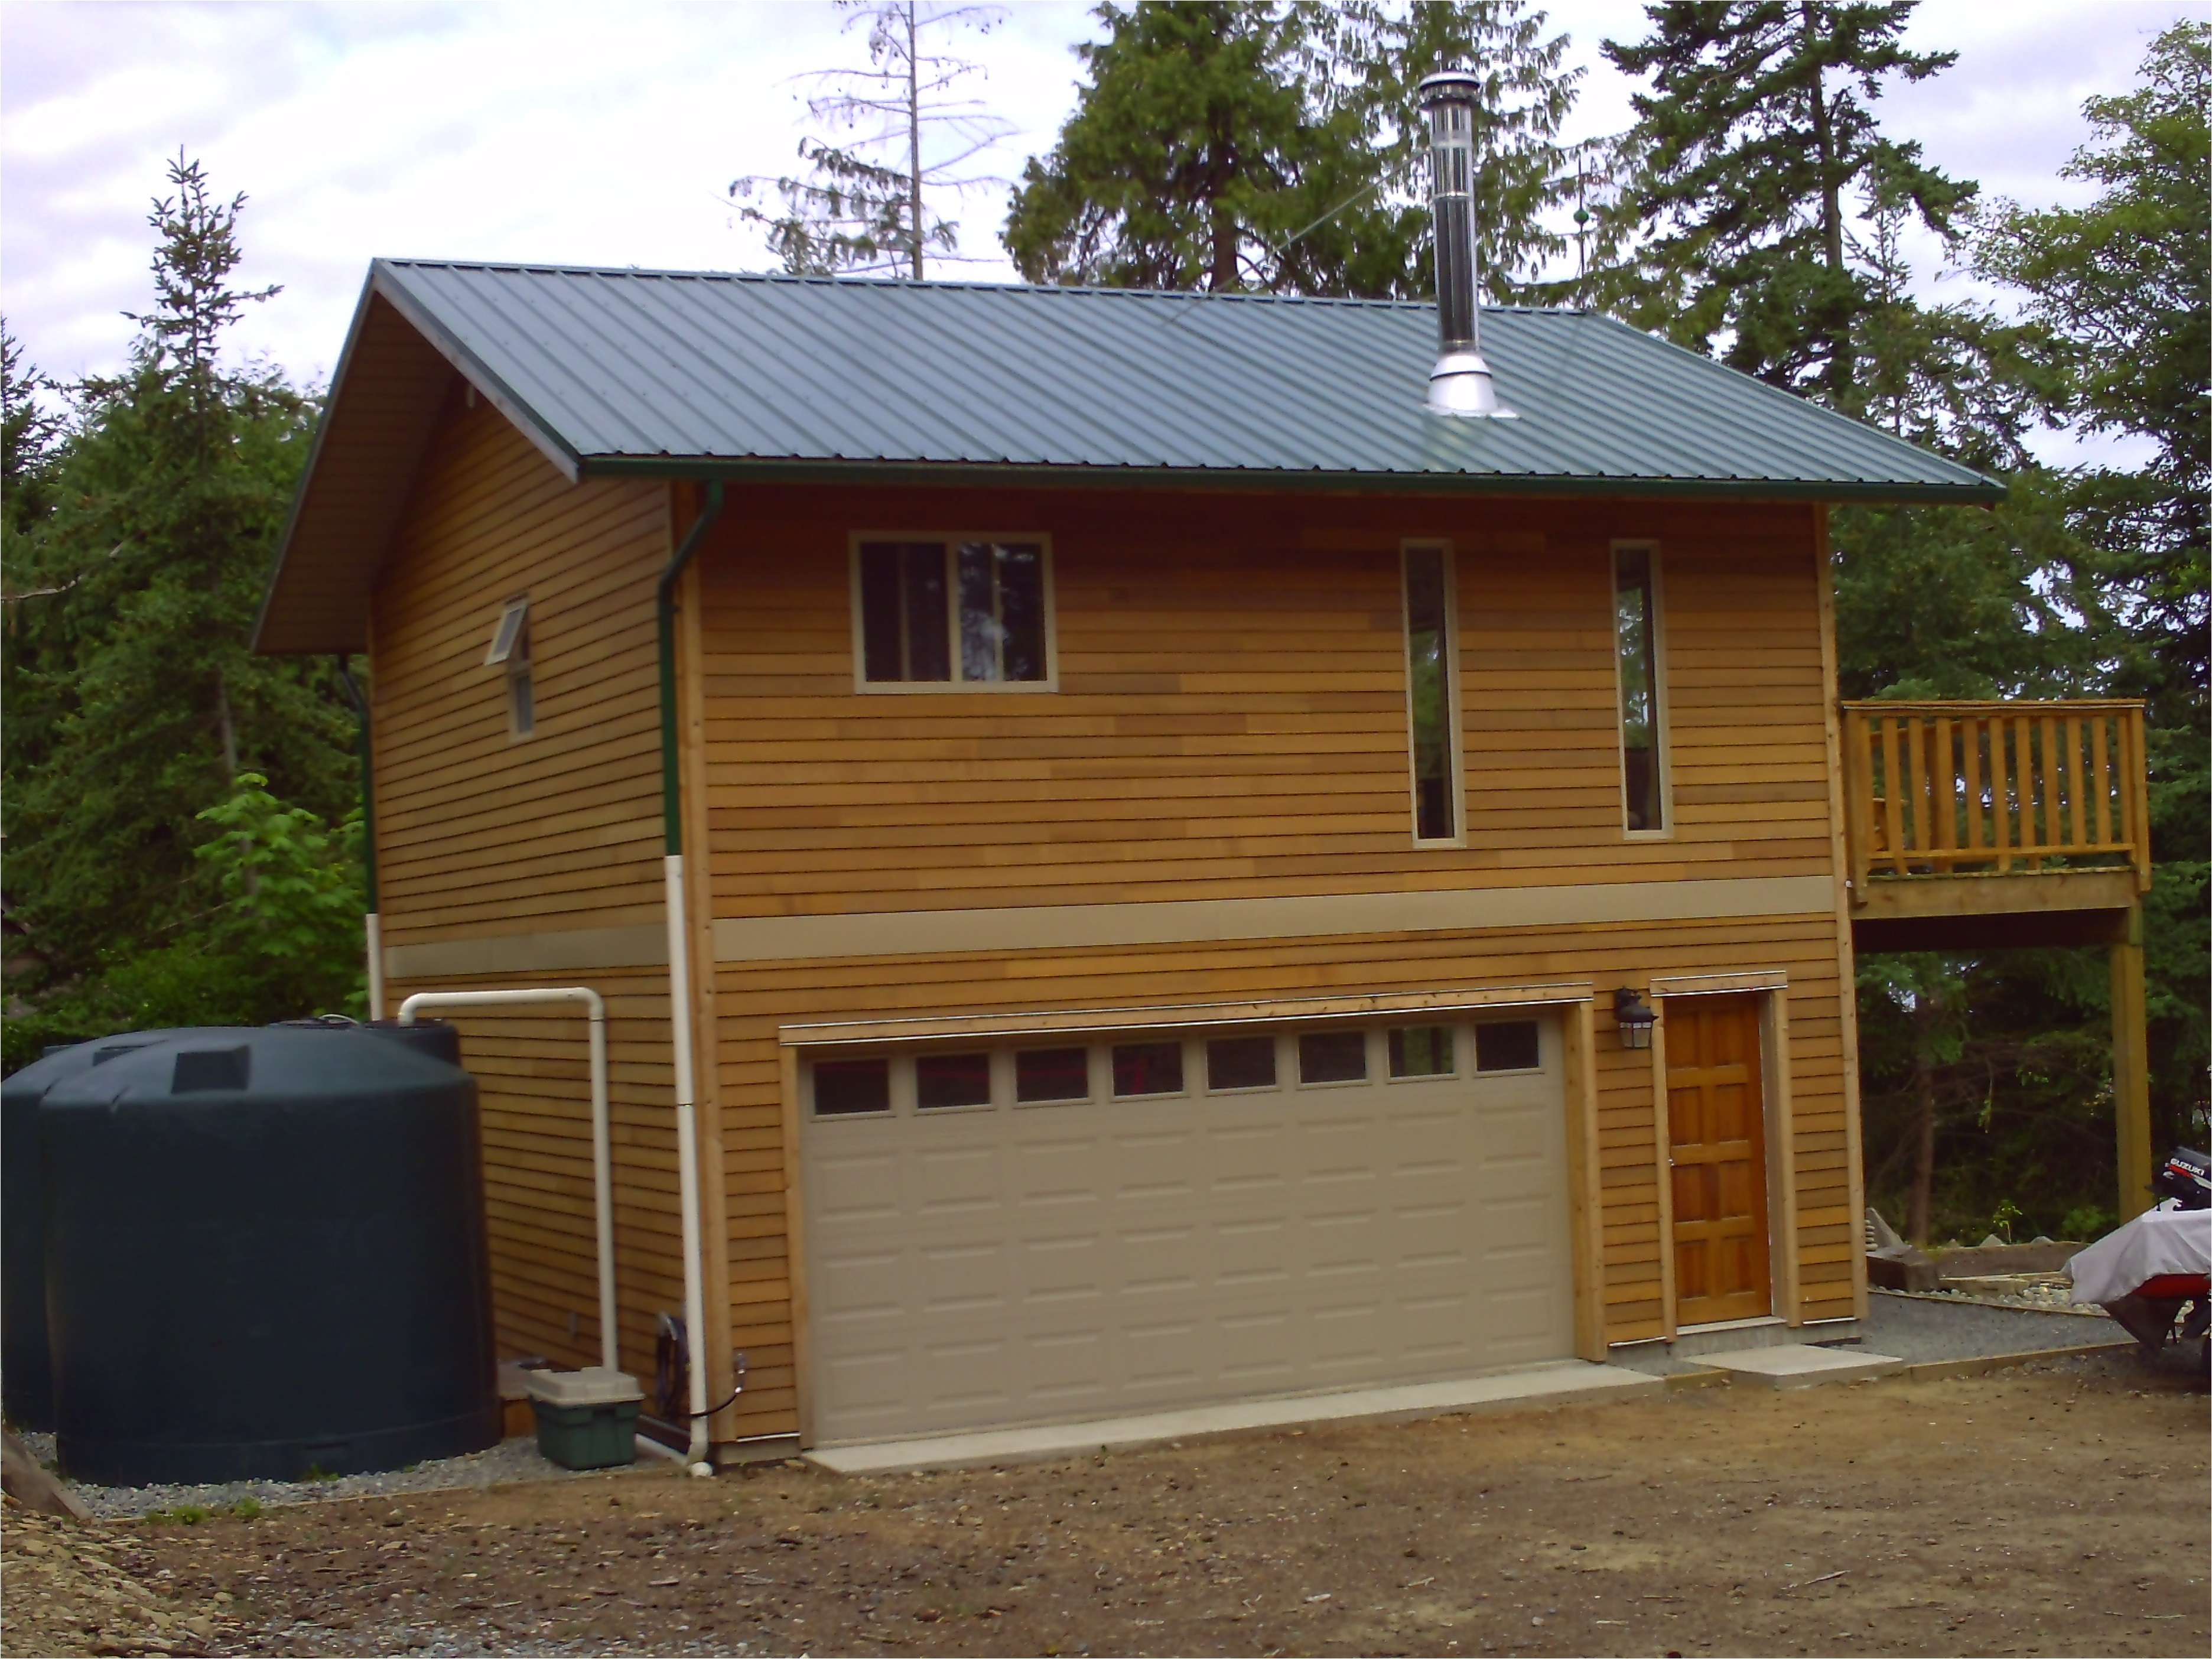 wonderful loft small houses with sloped roofing as well as wide sliding garage doors as inspiring traditional tiny house designs